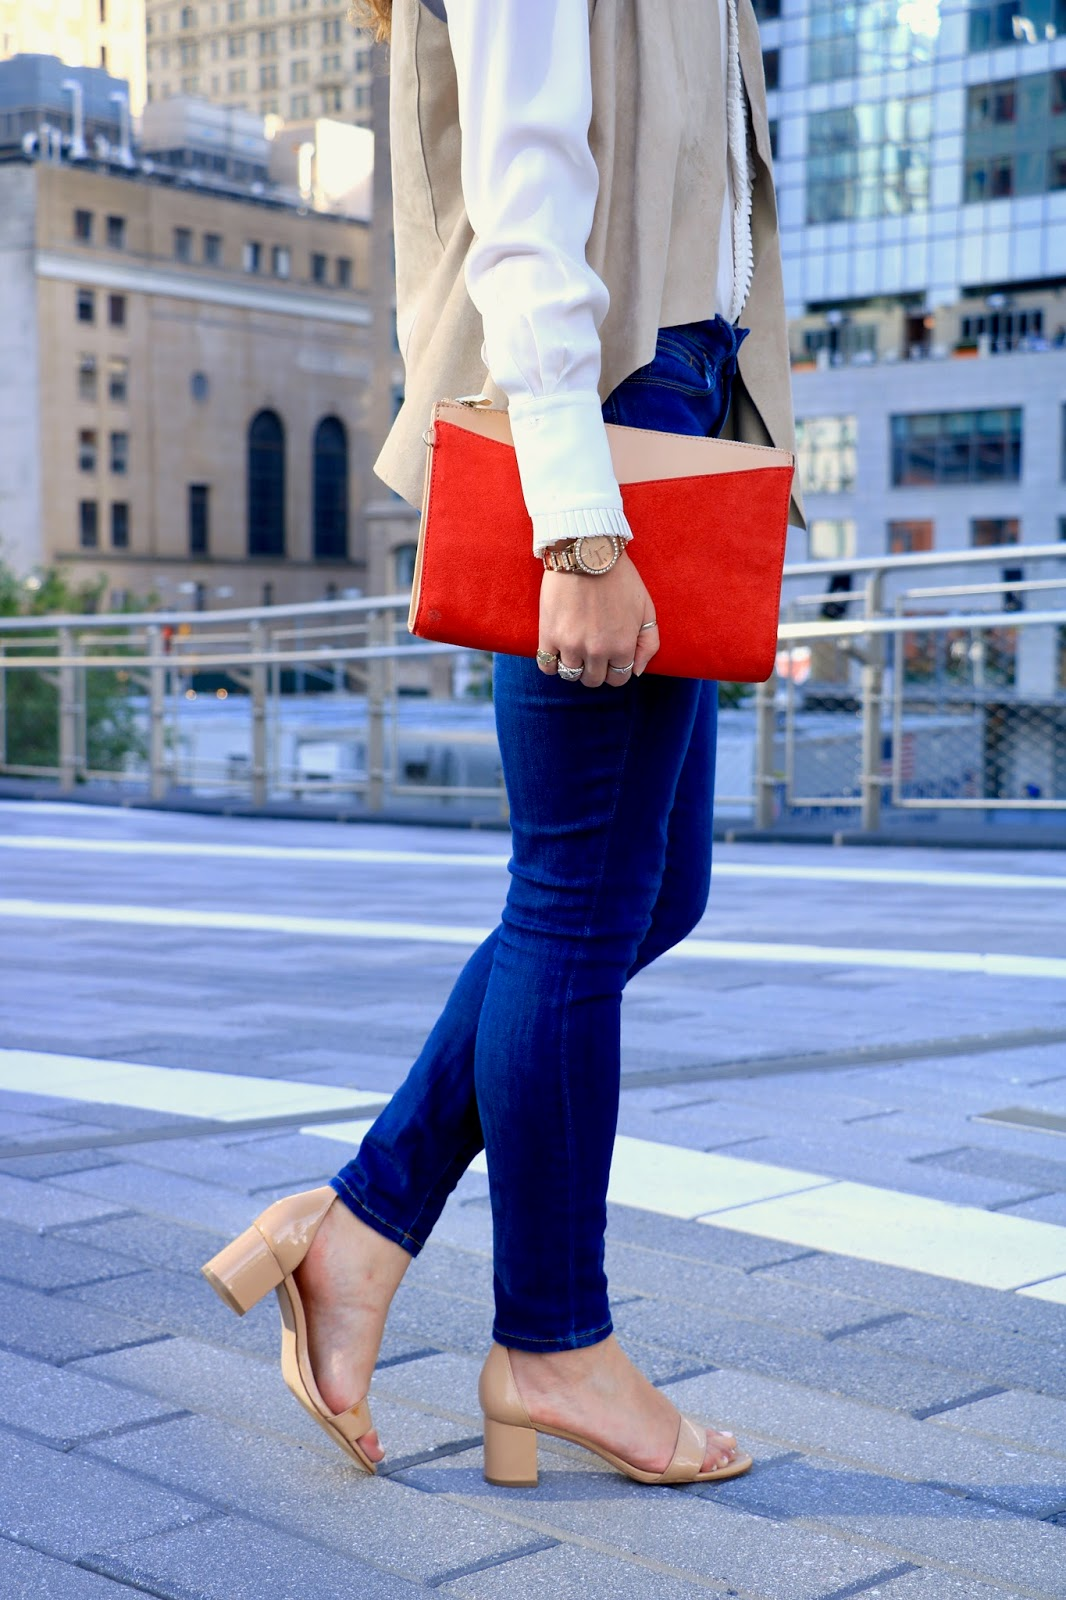 Nyc fashion blogger Kathleen Harper in skinny jeans and heels